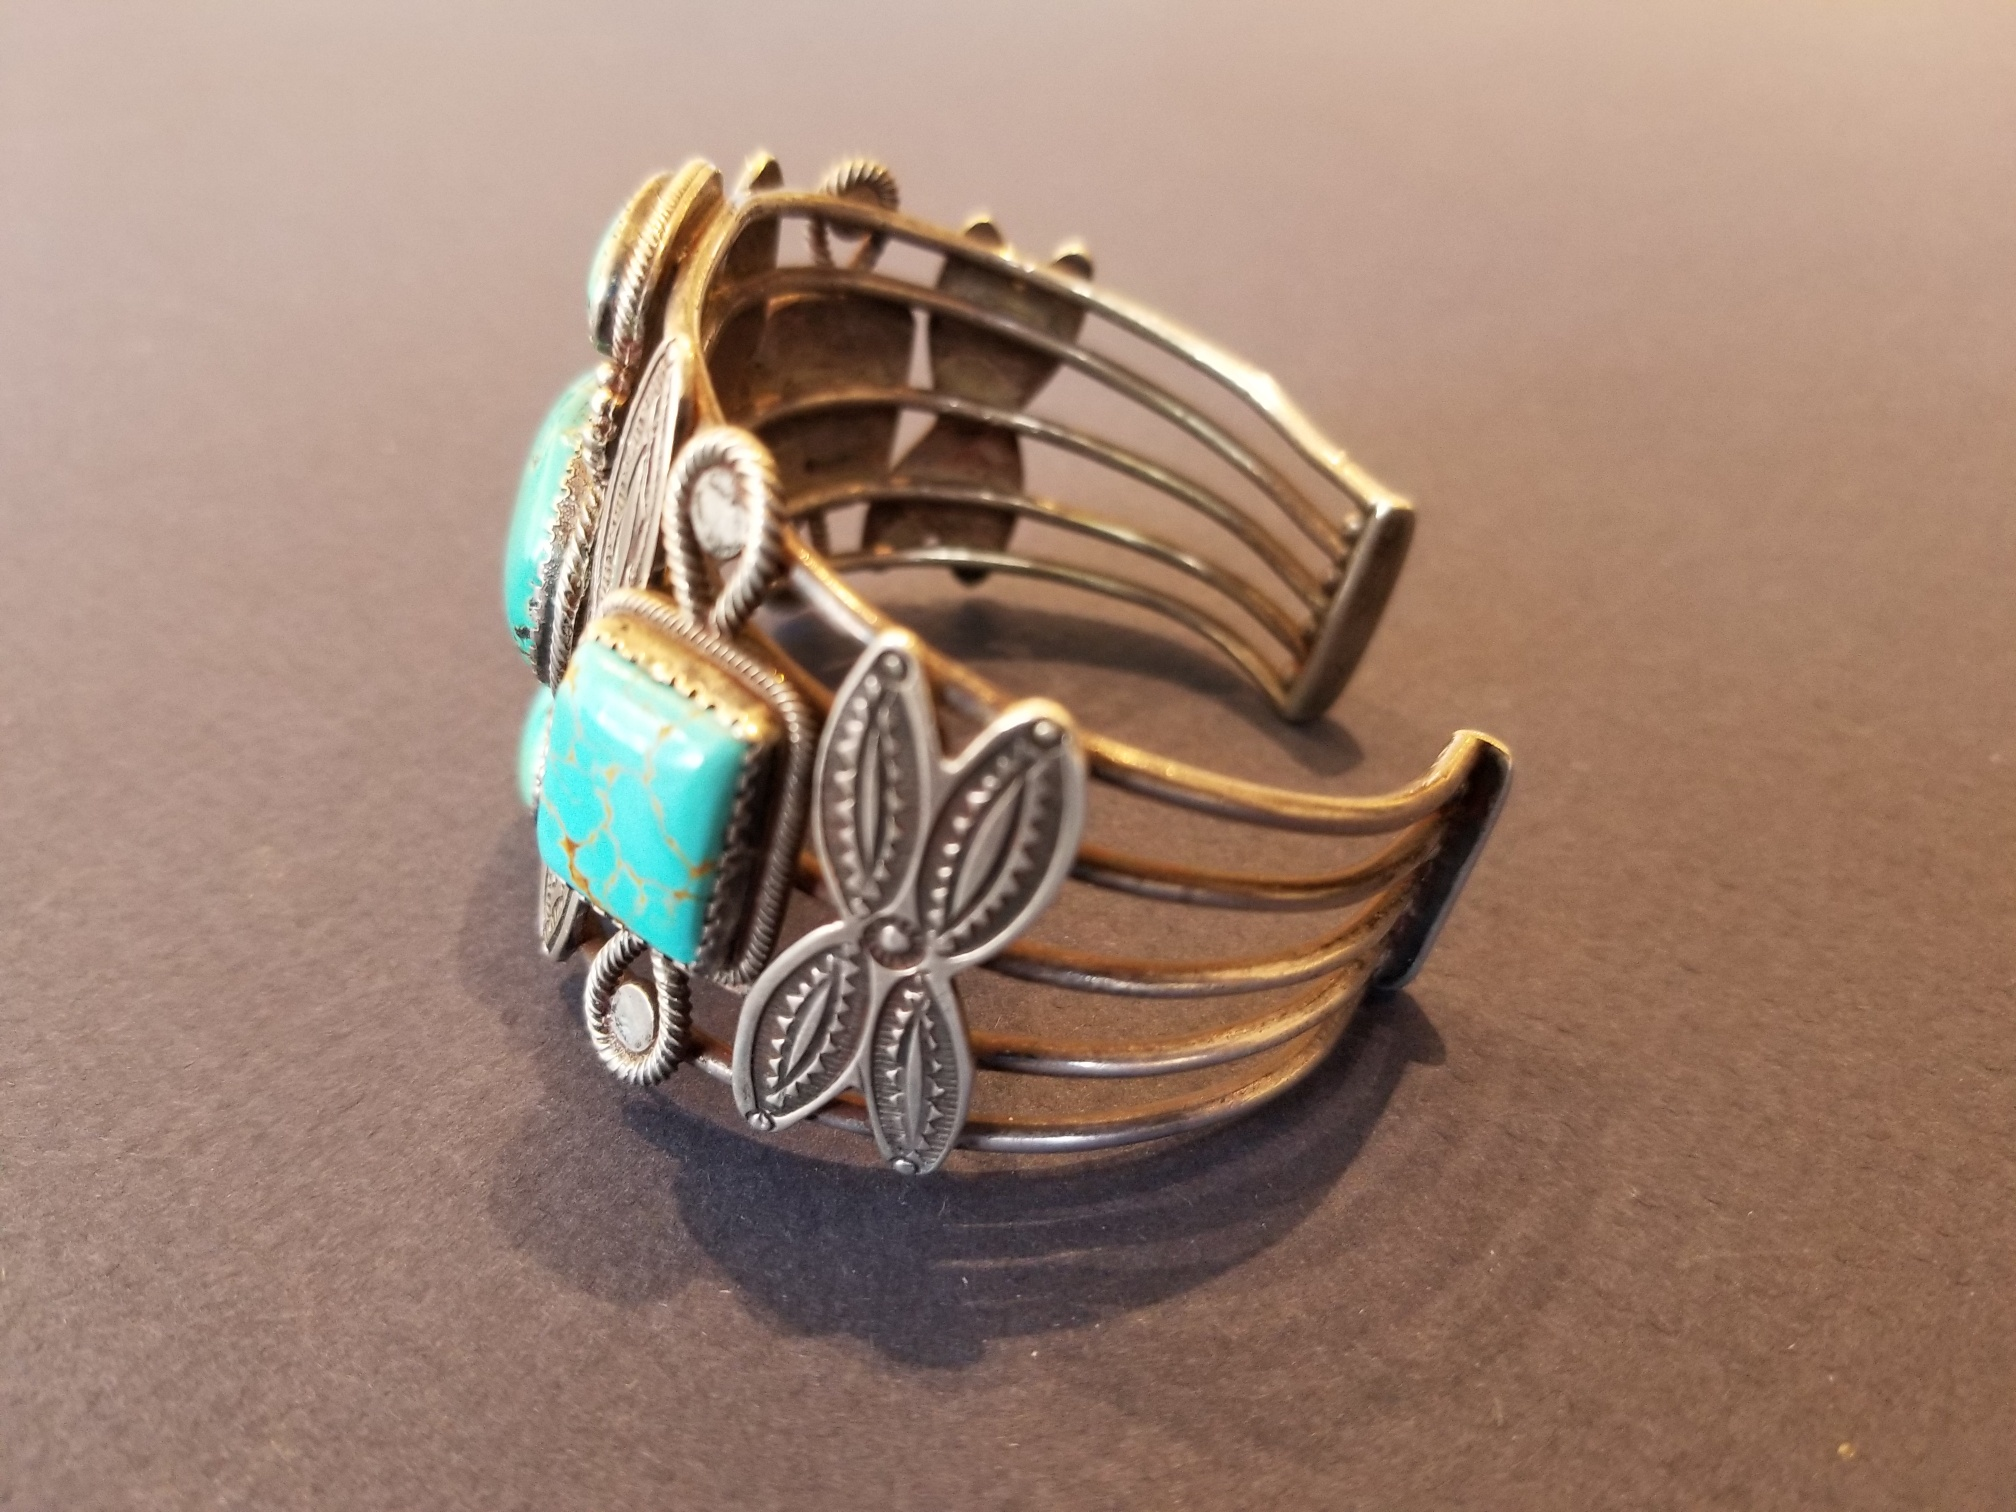 Side view of intricate cuff